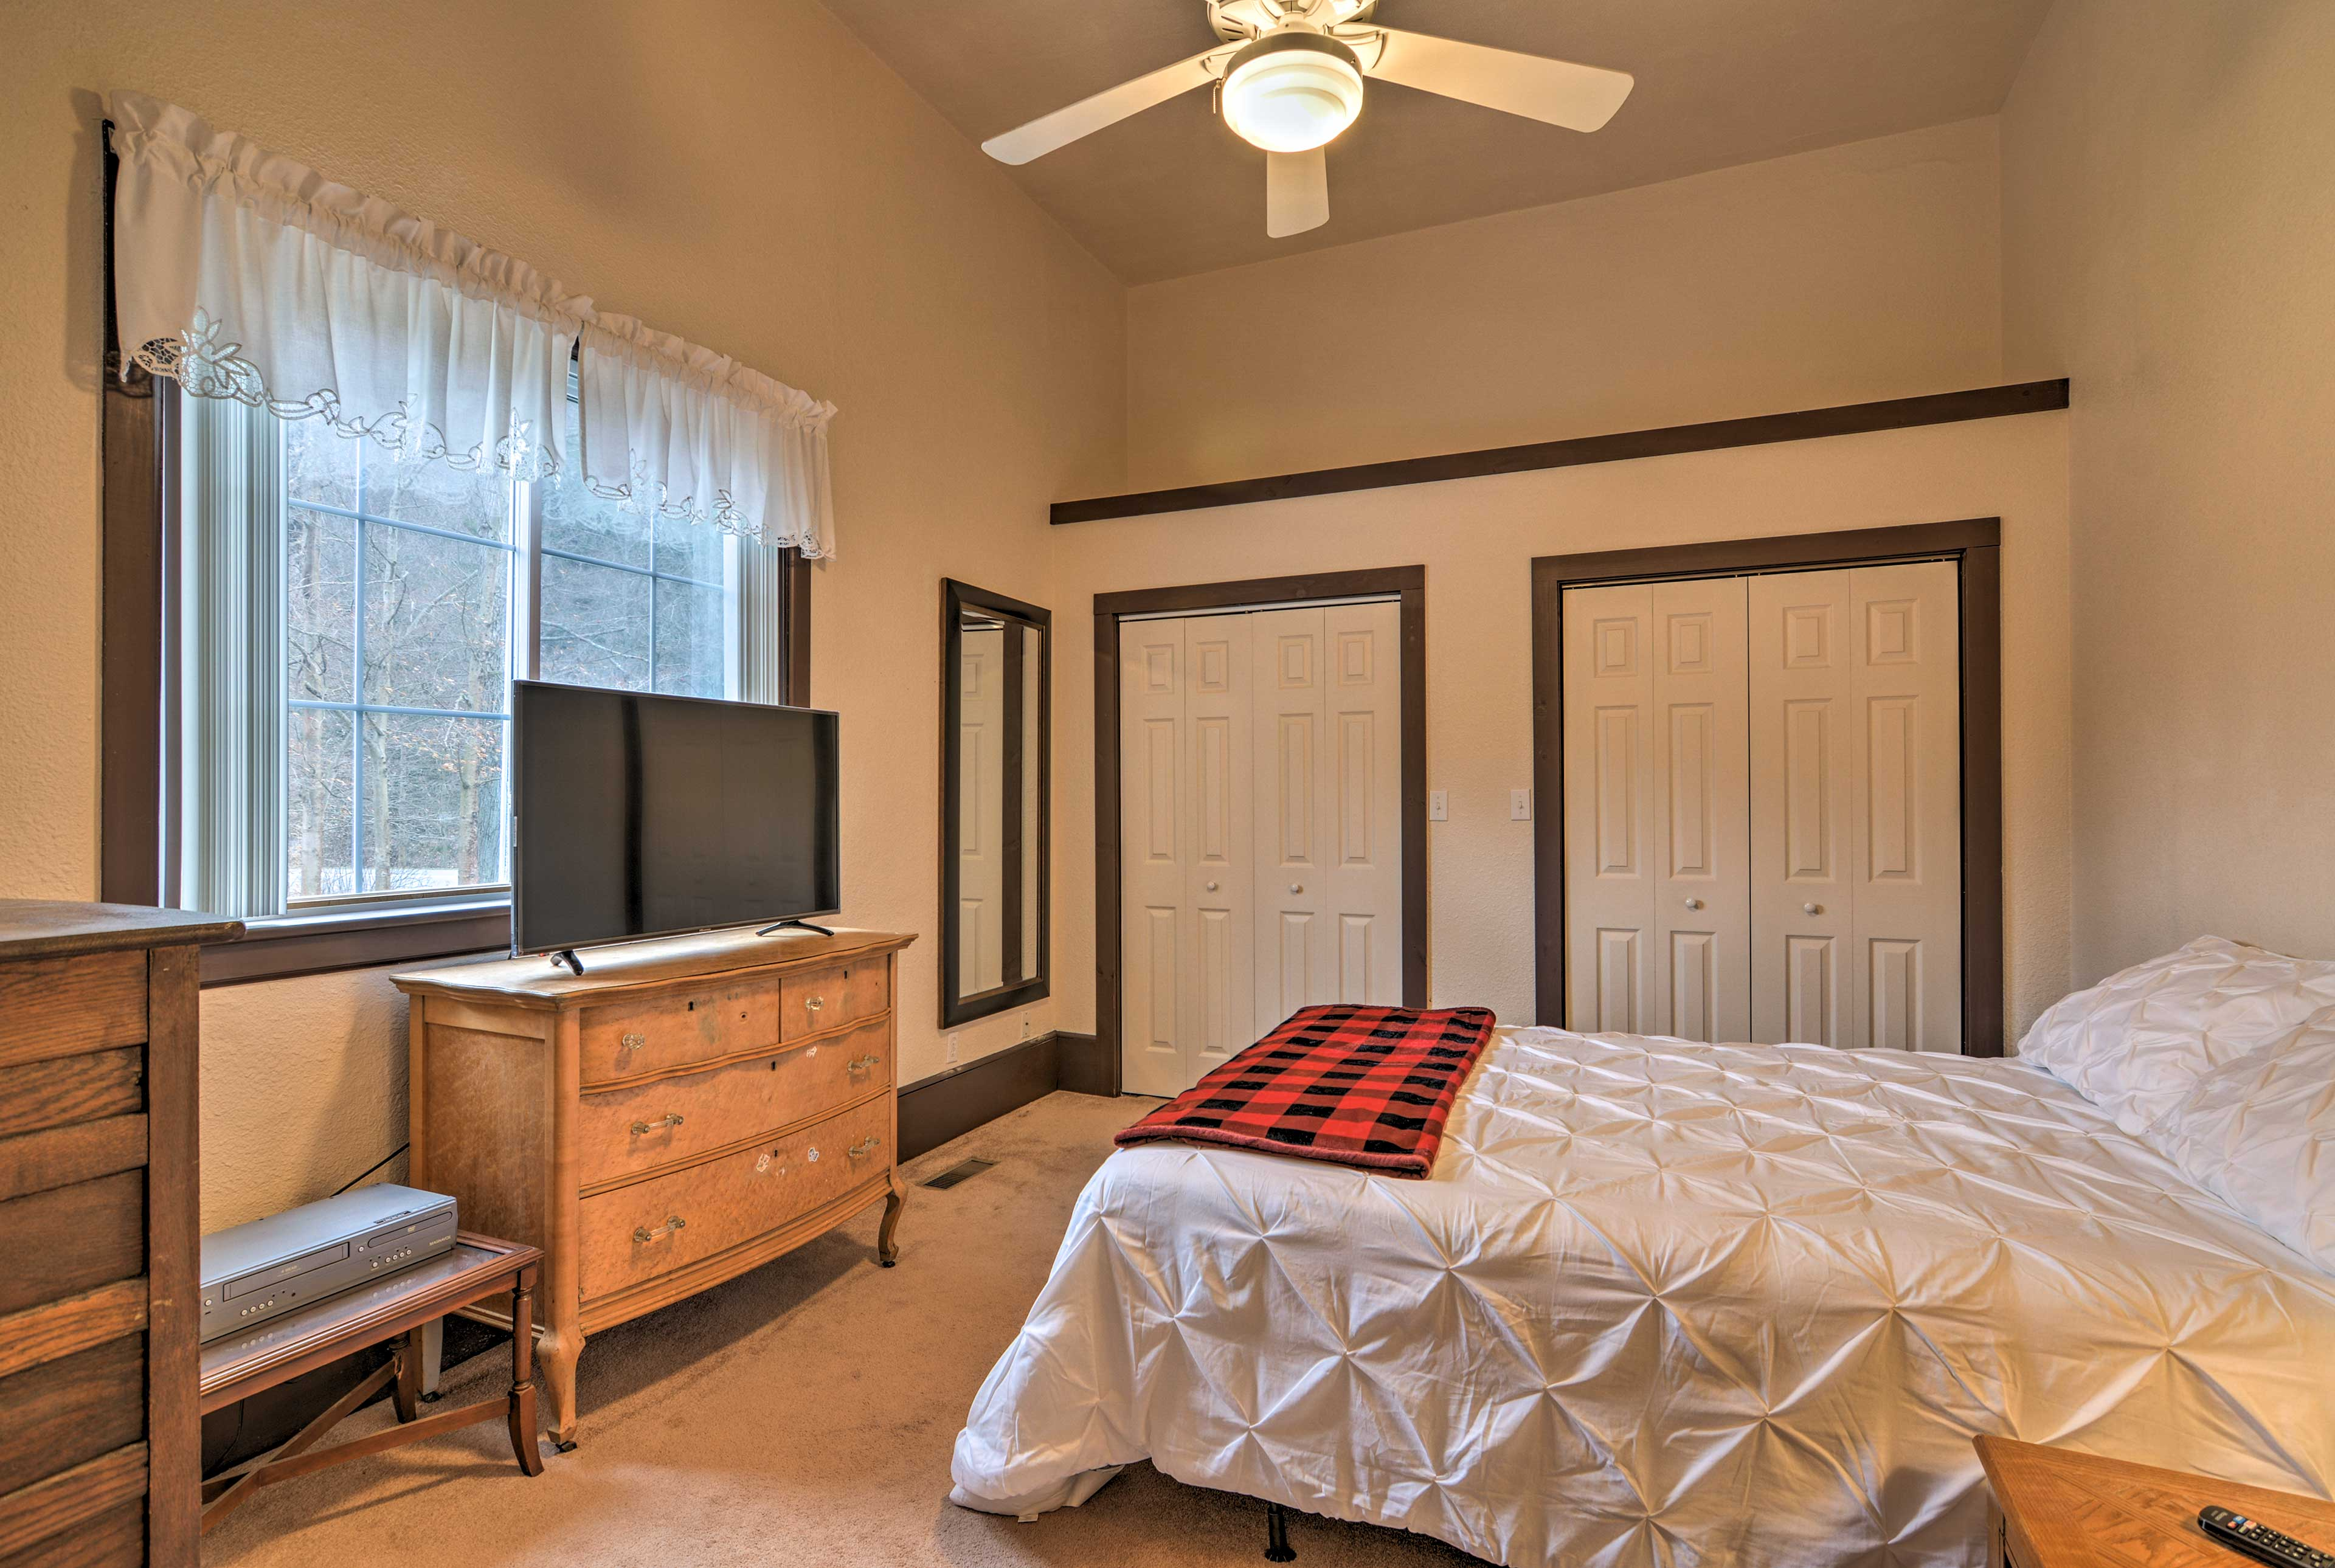 Two guests will sleep well in this queen bed.